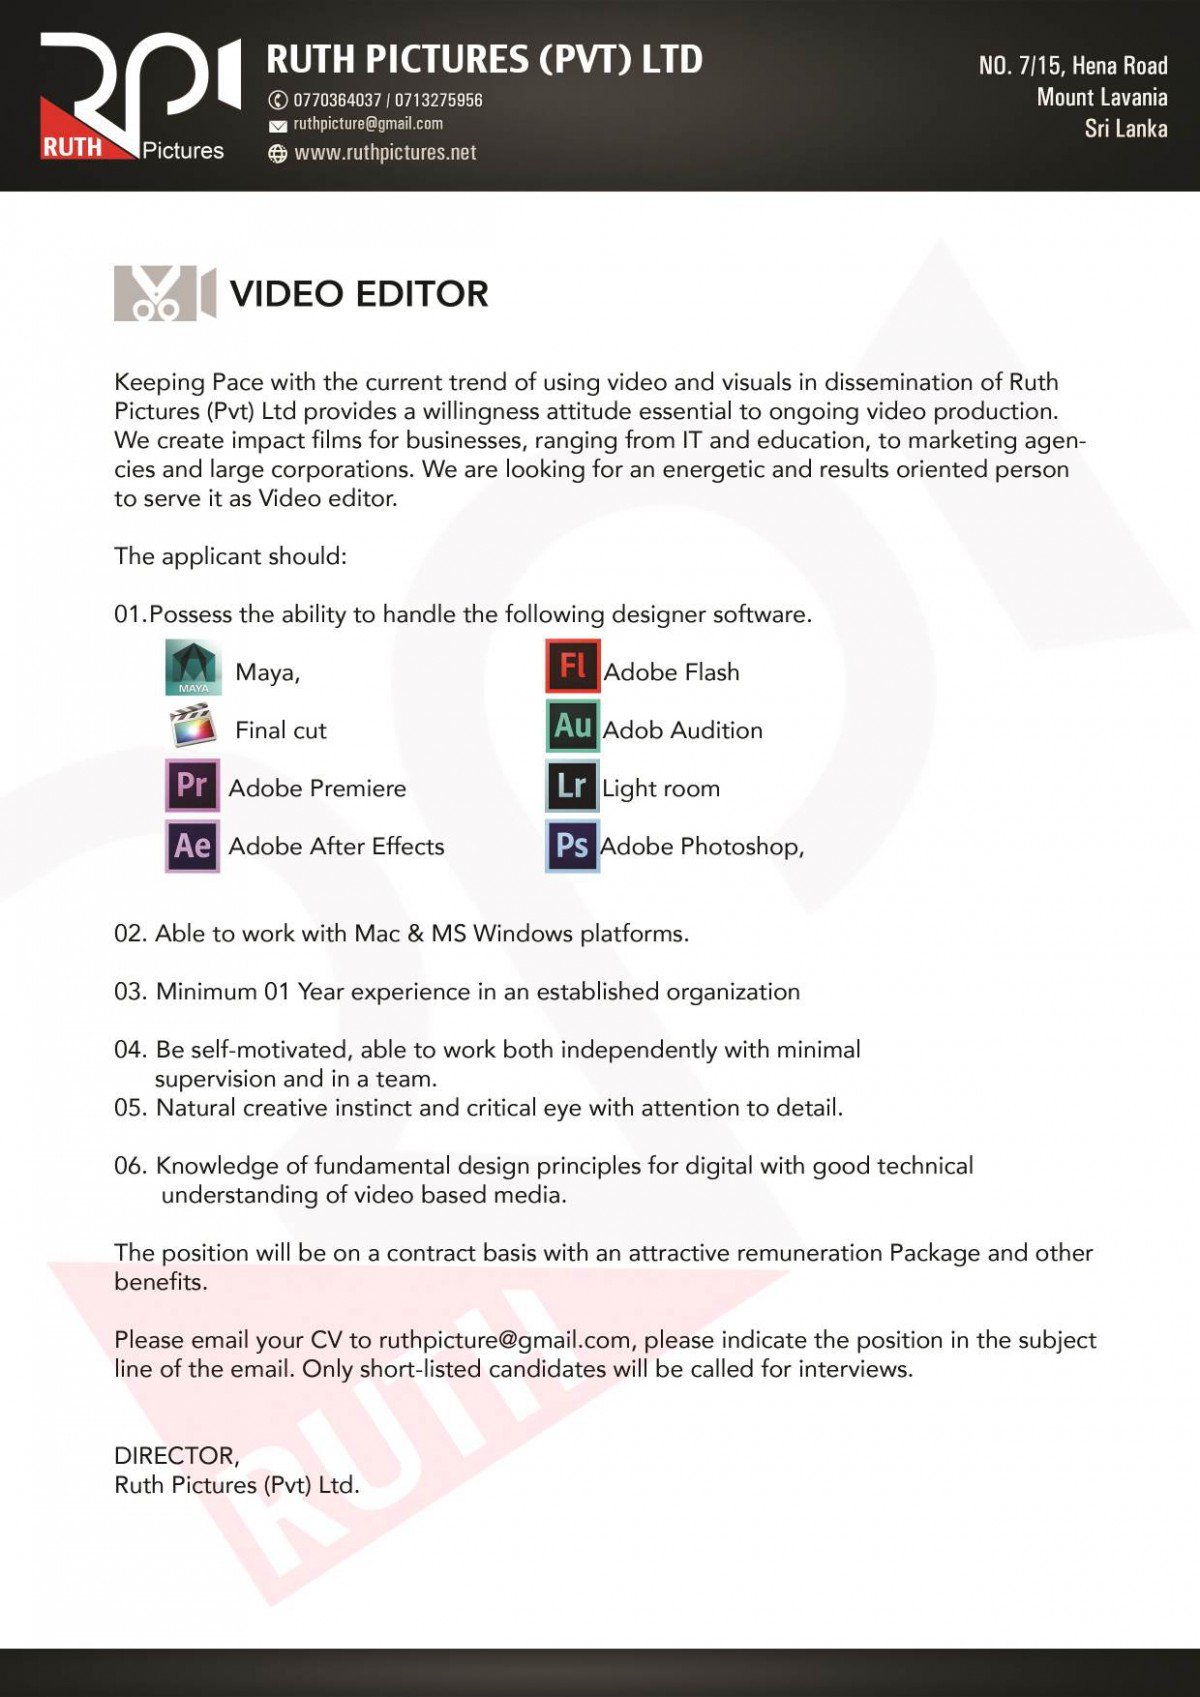 video editor job vacancy in sri lanka adobe after effects 1 adobe photoshop 02 able to work mac ms windows platforms 03 minimum 01 year experience in an established organization 04